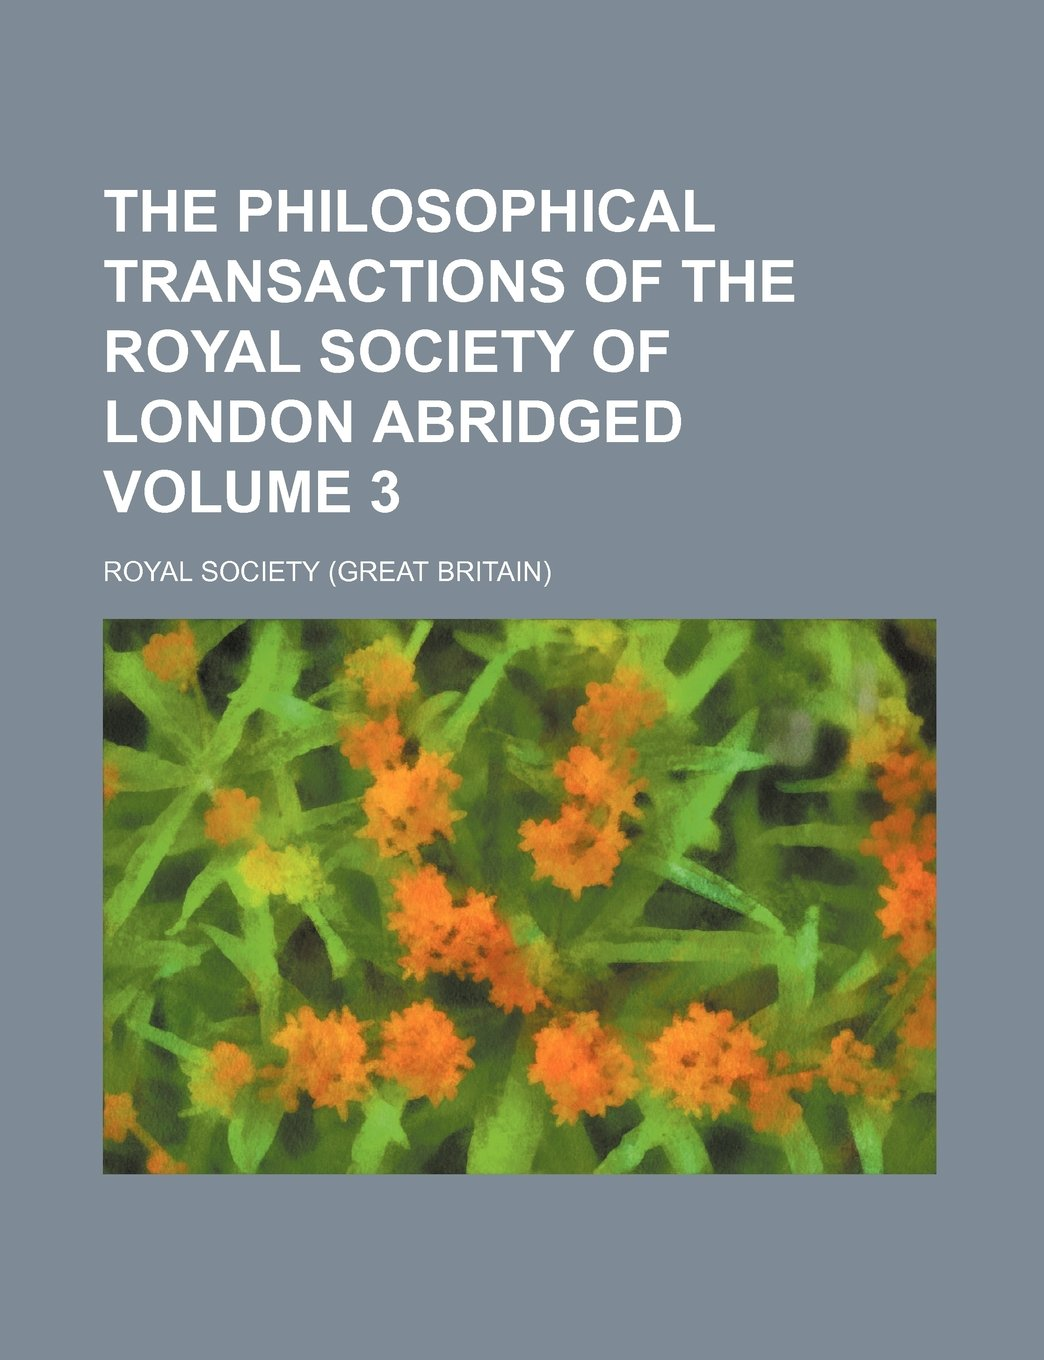 Download The Philosophical transactions of the Royal Society of London abridged Volume 3 PDF